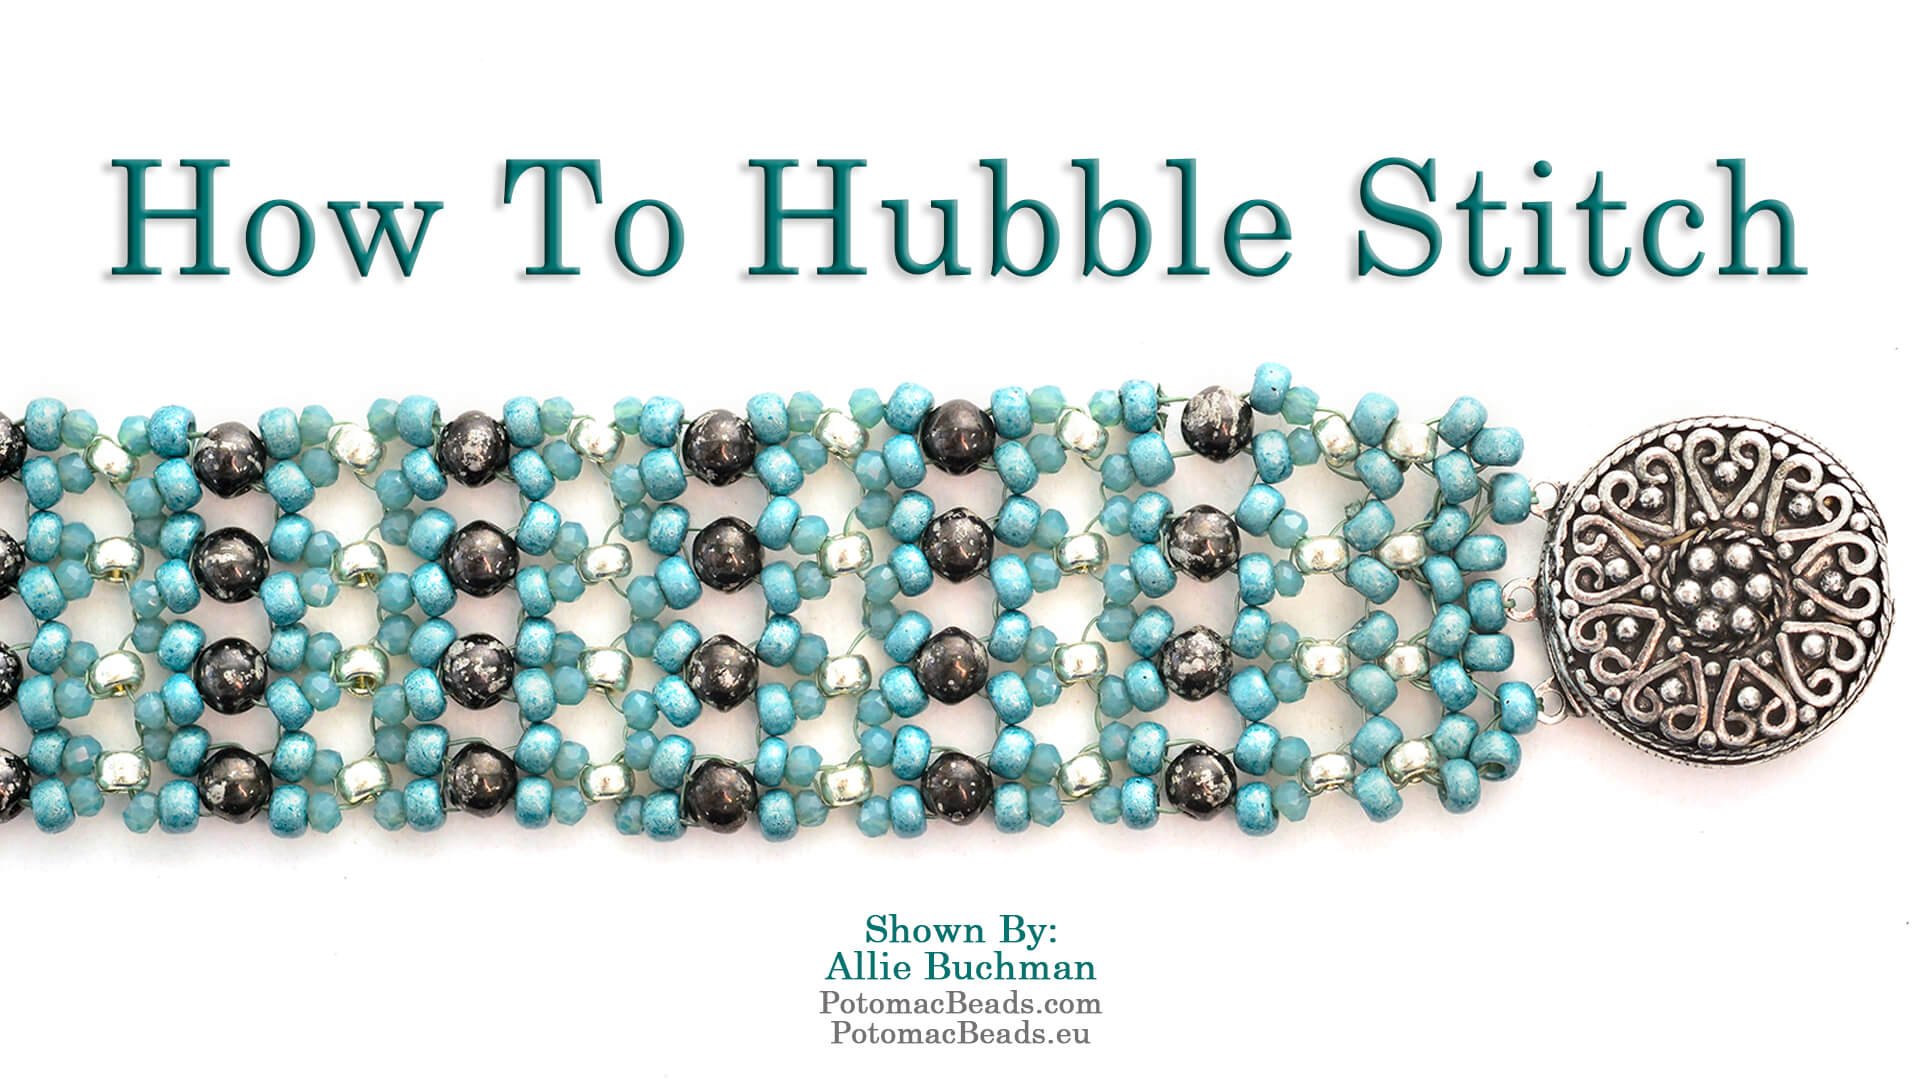 How to Bead Jewelry / Videos Sorted by Beads / Potomac Crystal Videos / How to Hubble Stitch